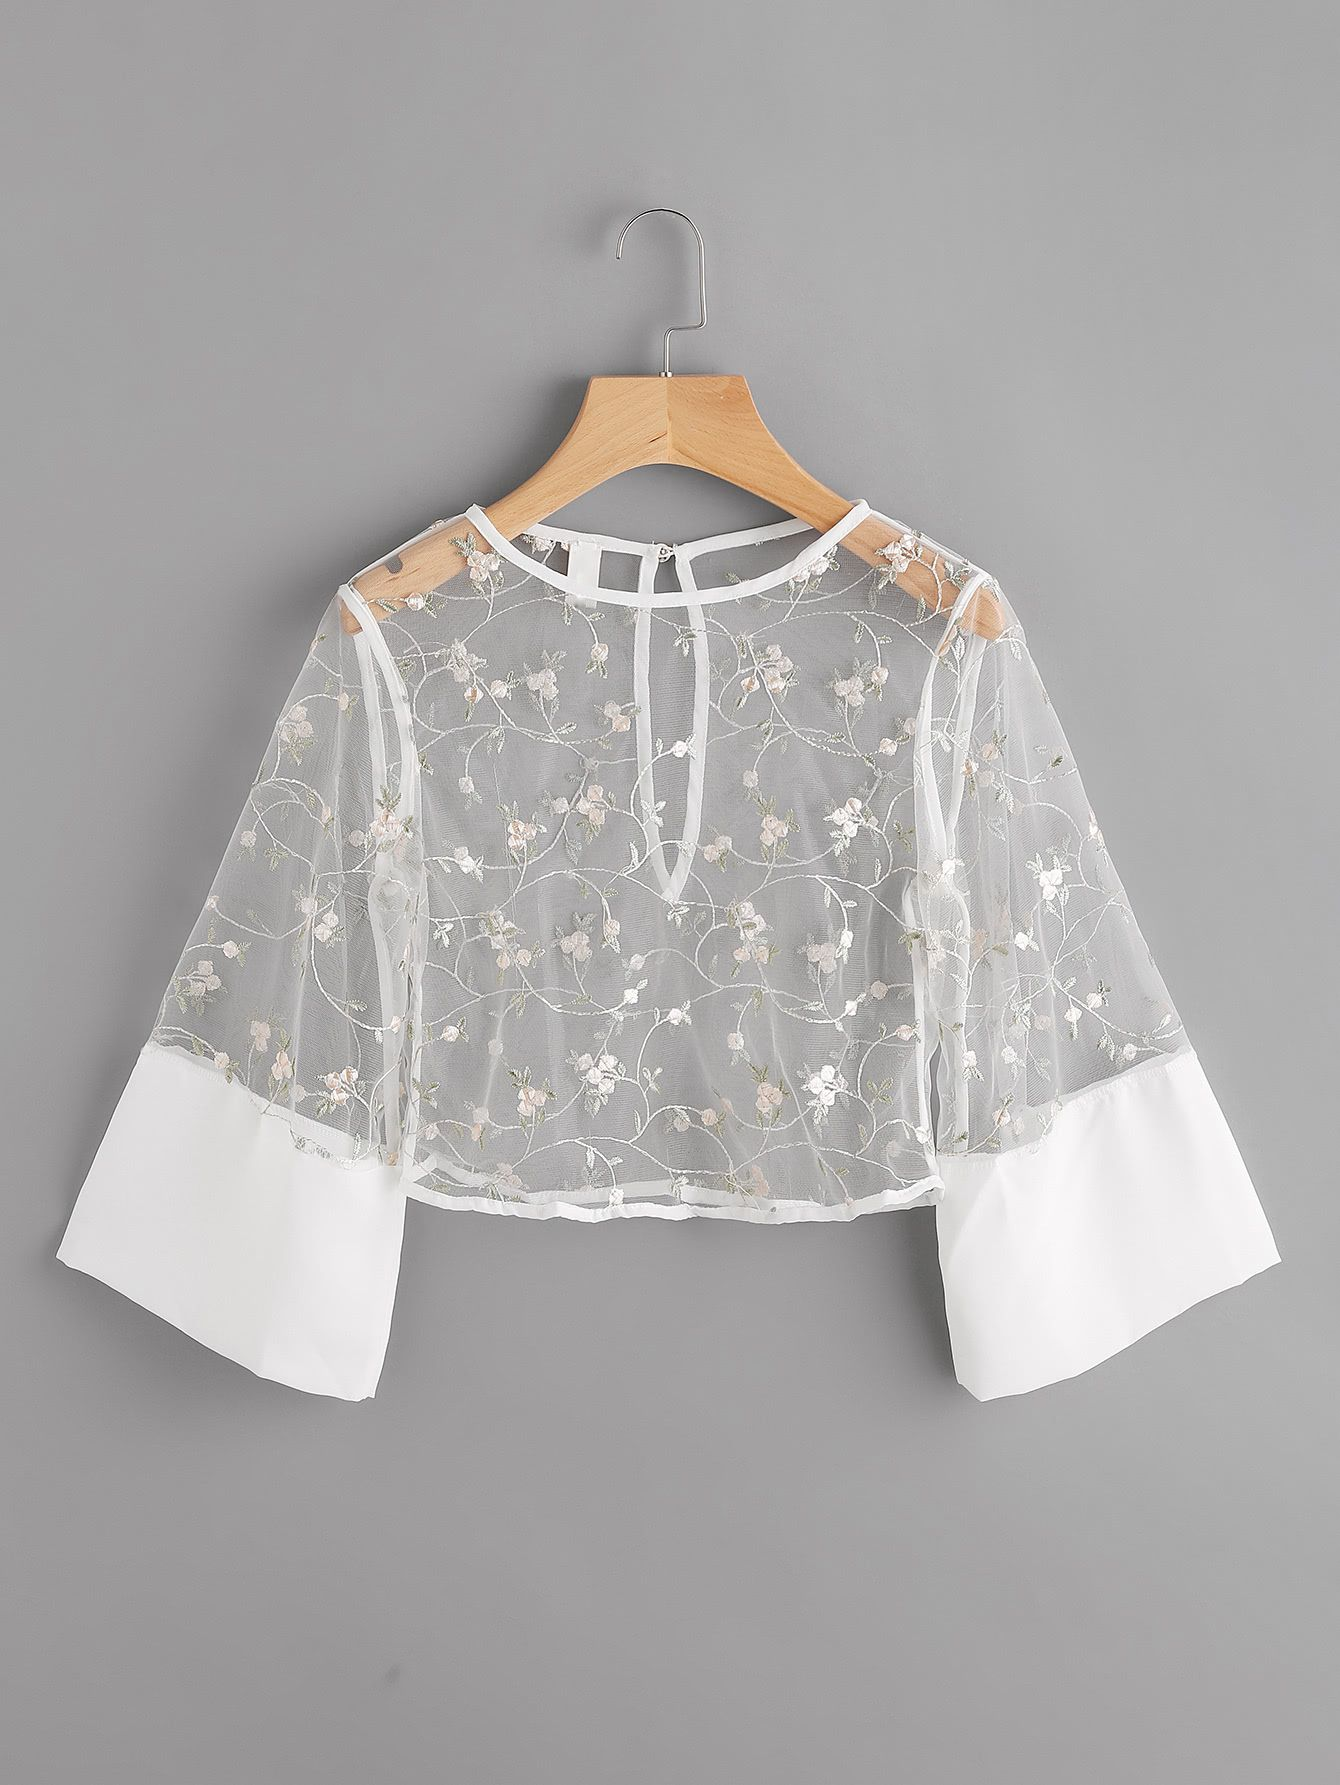 25f56aa62f0 Shop Contrast Cuff Keyhole Back Embroidery Mesh Crop Top online. SheIn  offers Contrast Cuff Keyhole Back Embroidery Mesh Crop Top   more to fit  your ...